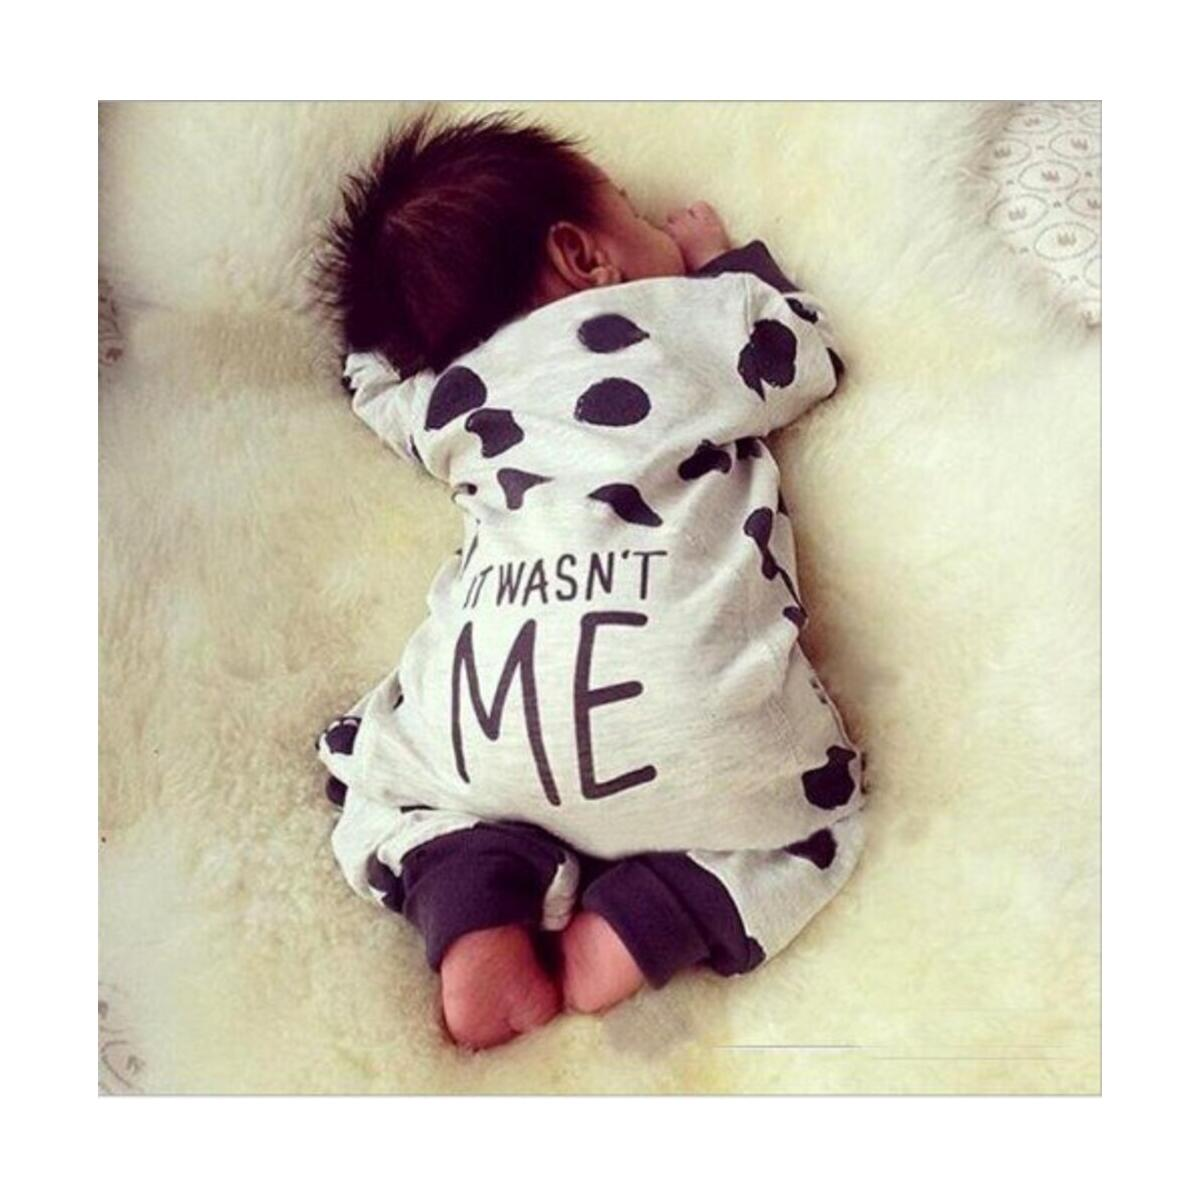 Newborn Baby Boy Girl Clothes It Wasn't Me Polka Dot Romper Jumpsuit Infant Clothing Set Outfits